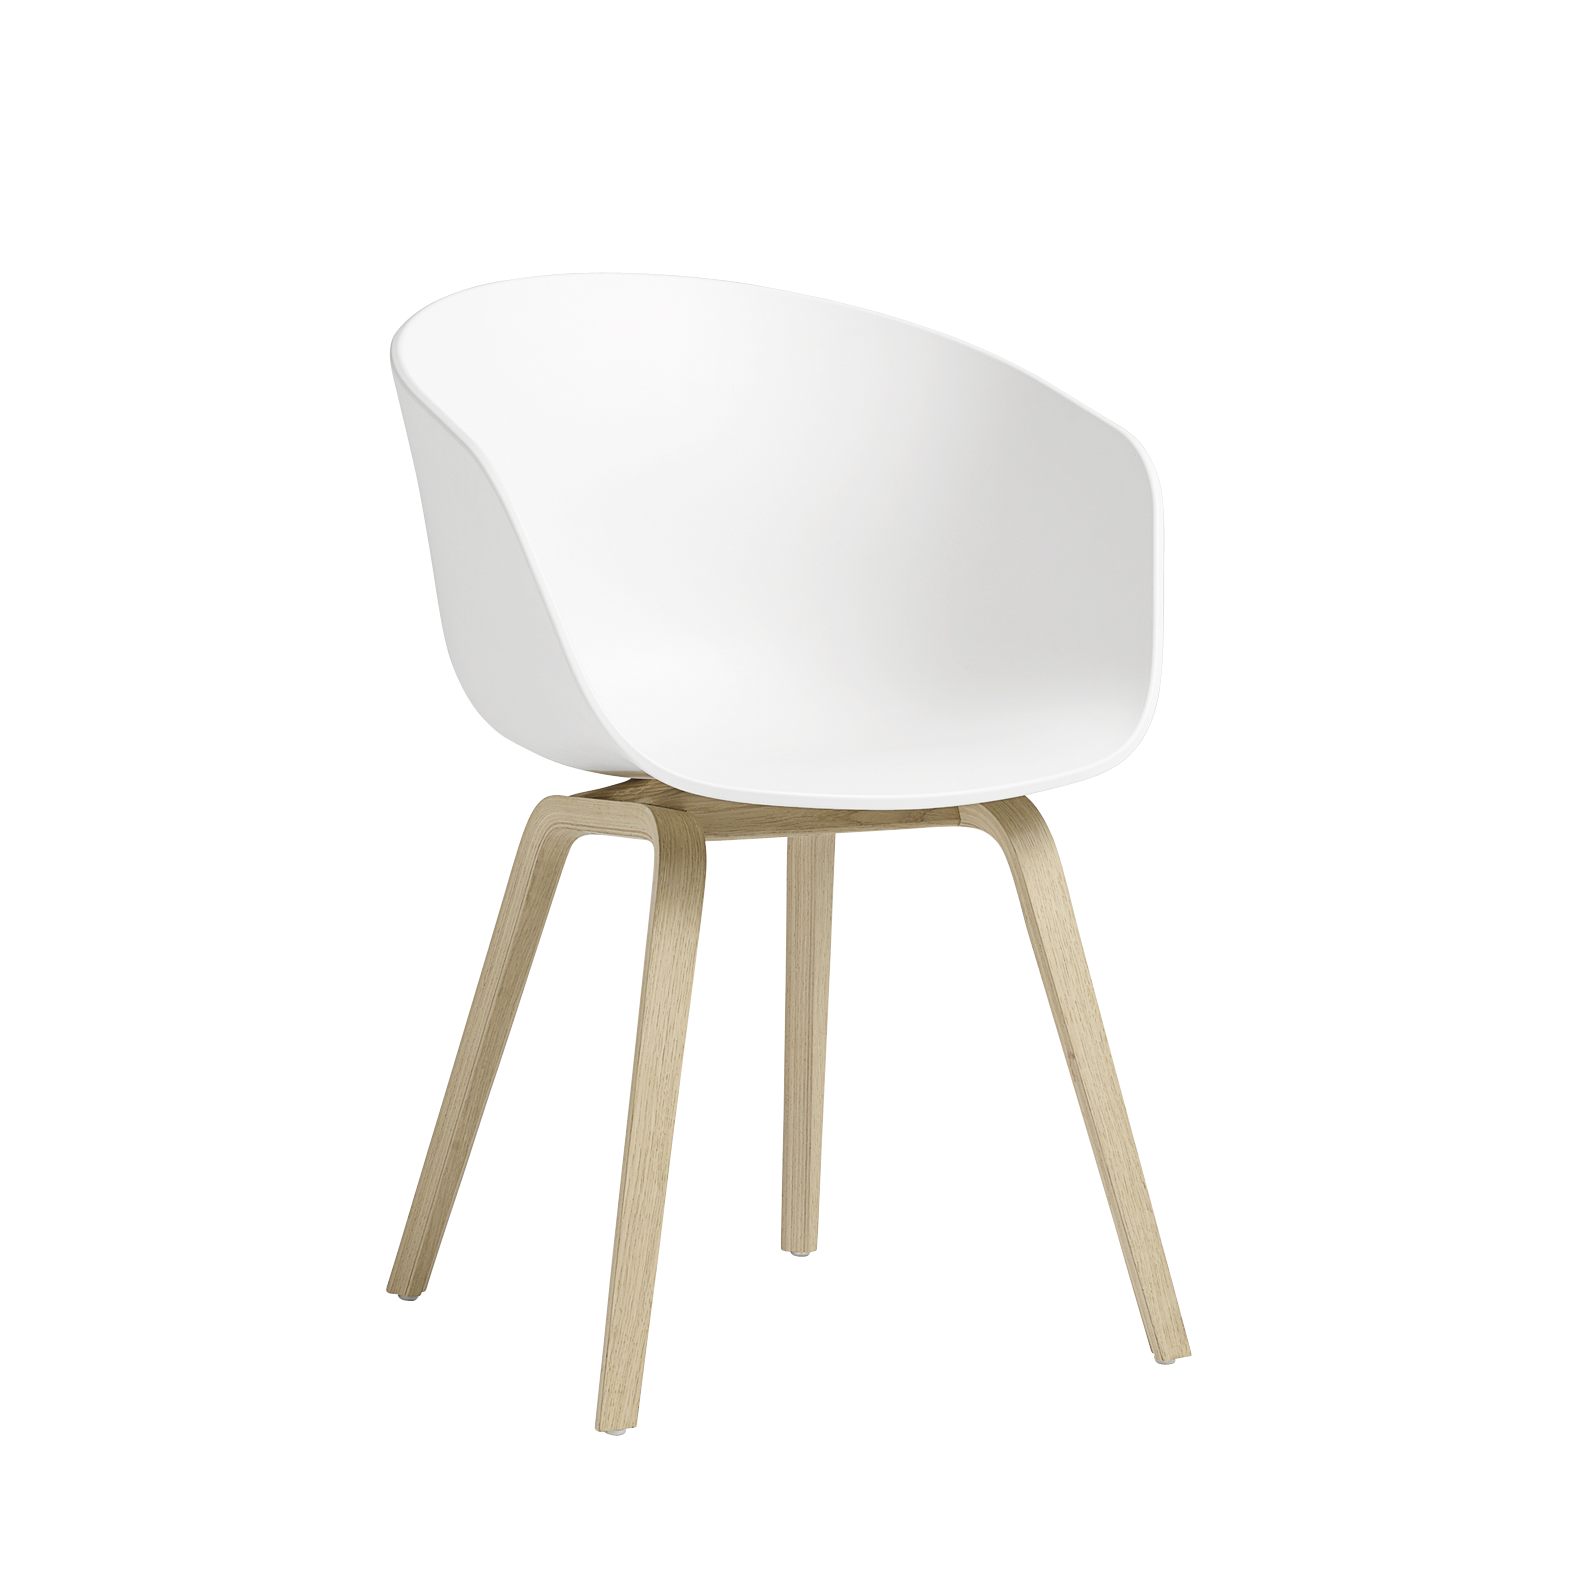 office chair conference dining scandinavian design aac22. About A Chair AAC22 Office Conference Dining Scandinavian Design Aac22